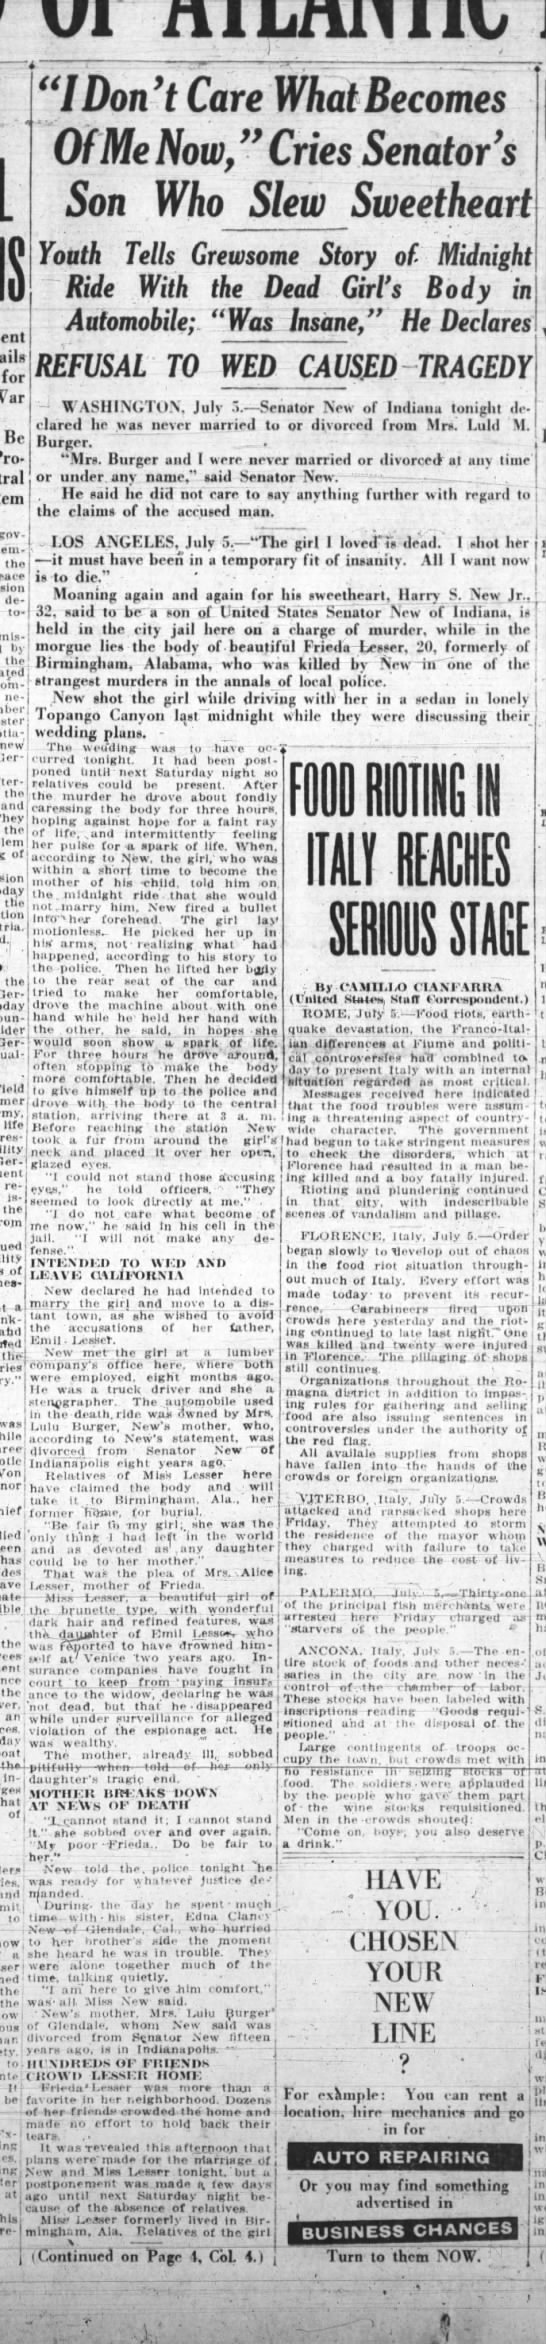 Harry S New Sr refuses to discuss Oakland Tribute, CA 6 Jul 1919, pg17 -